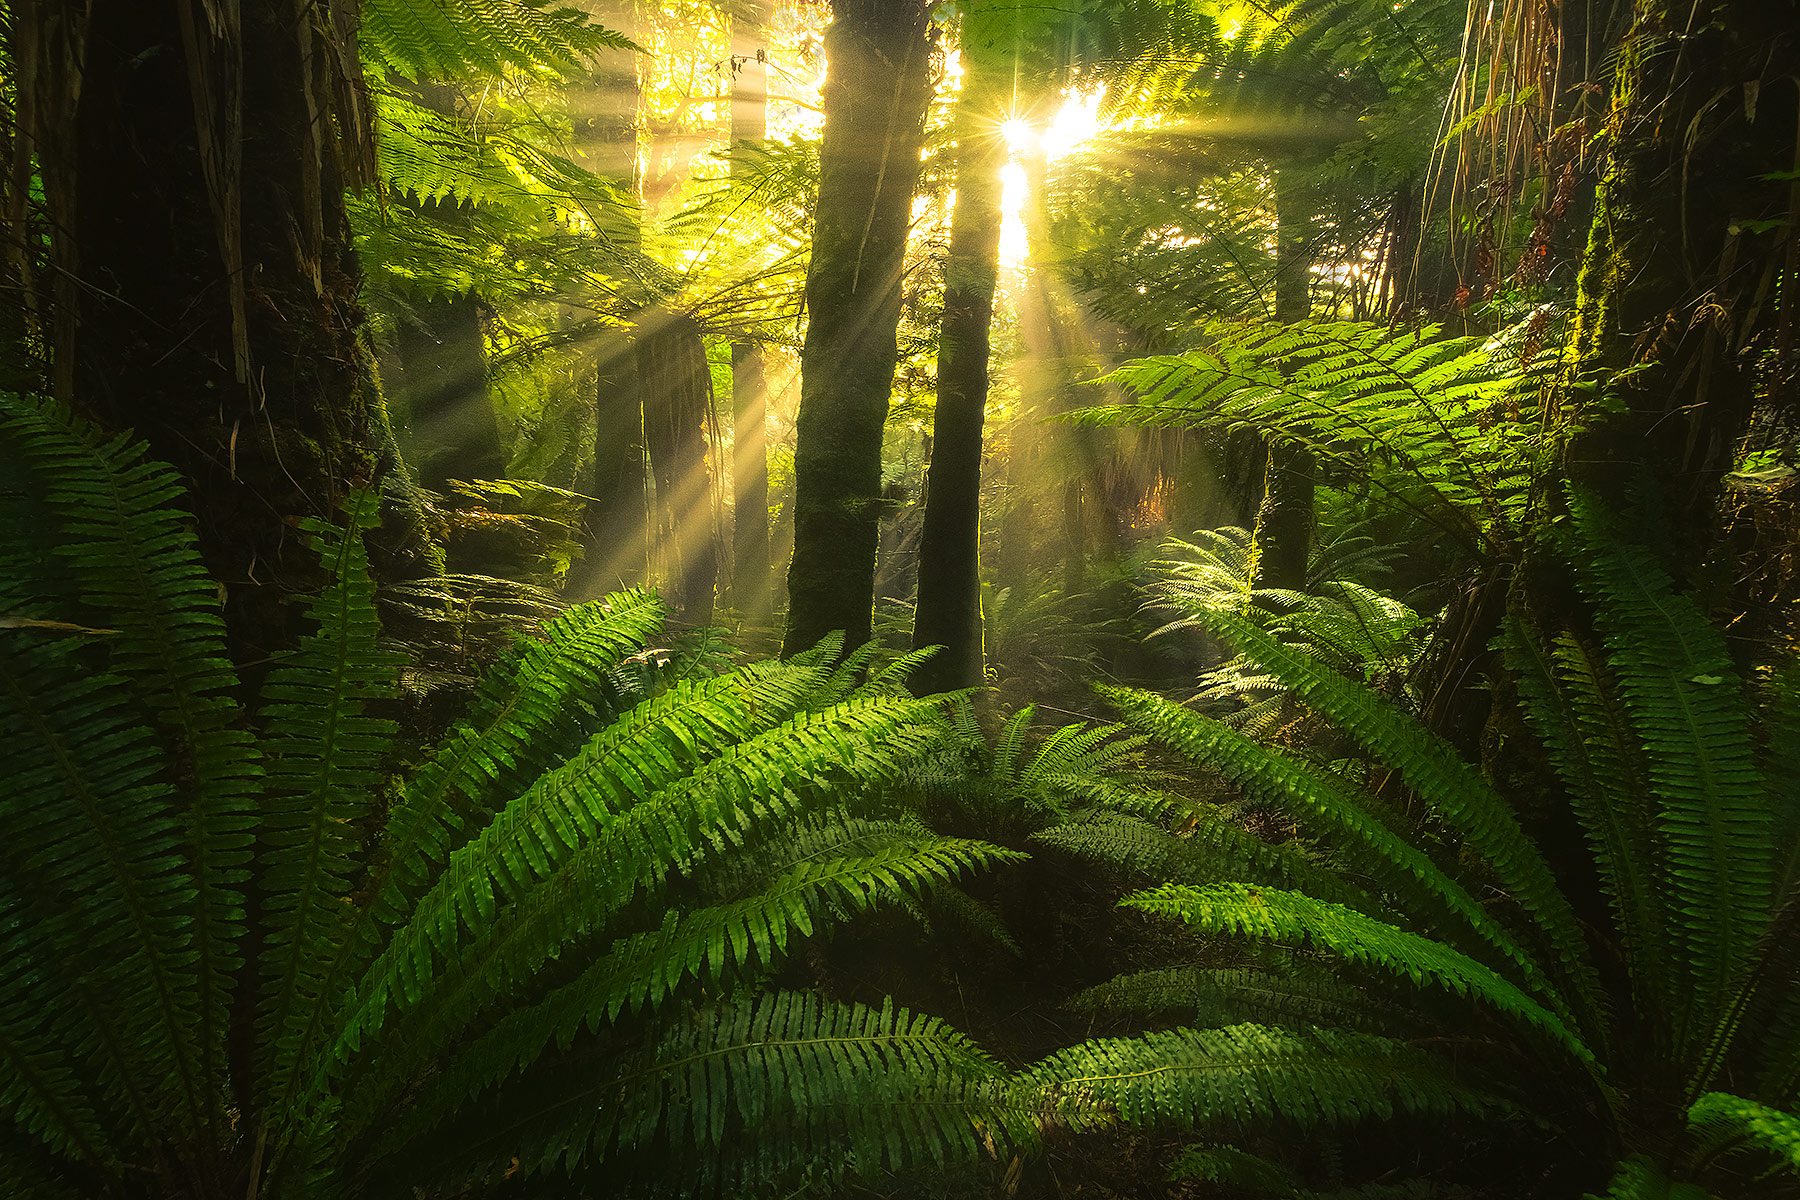 New Zealand, coast, forest, beams, light, rays, warm, photo